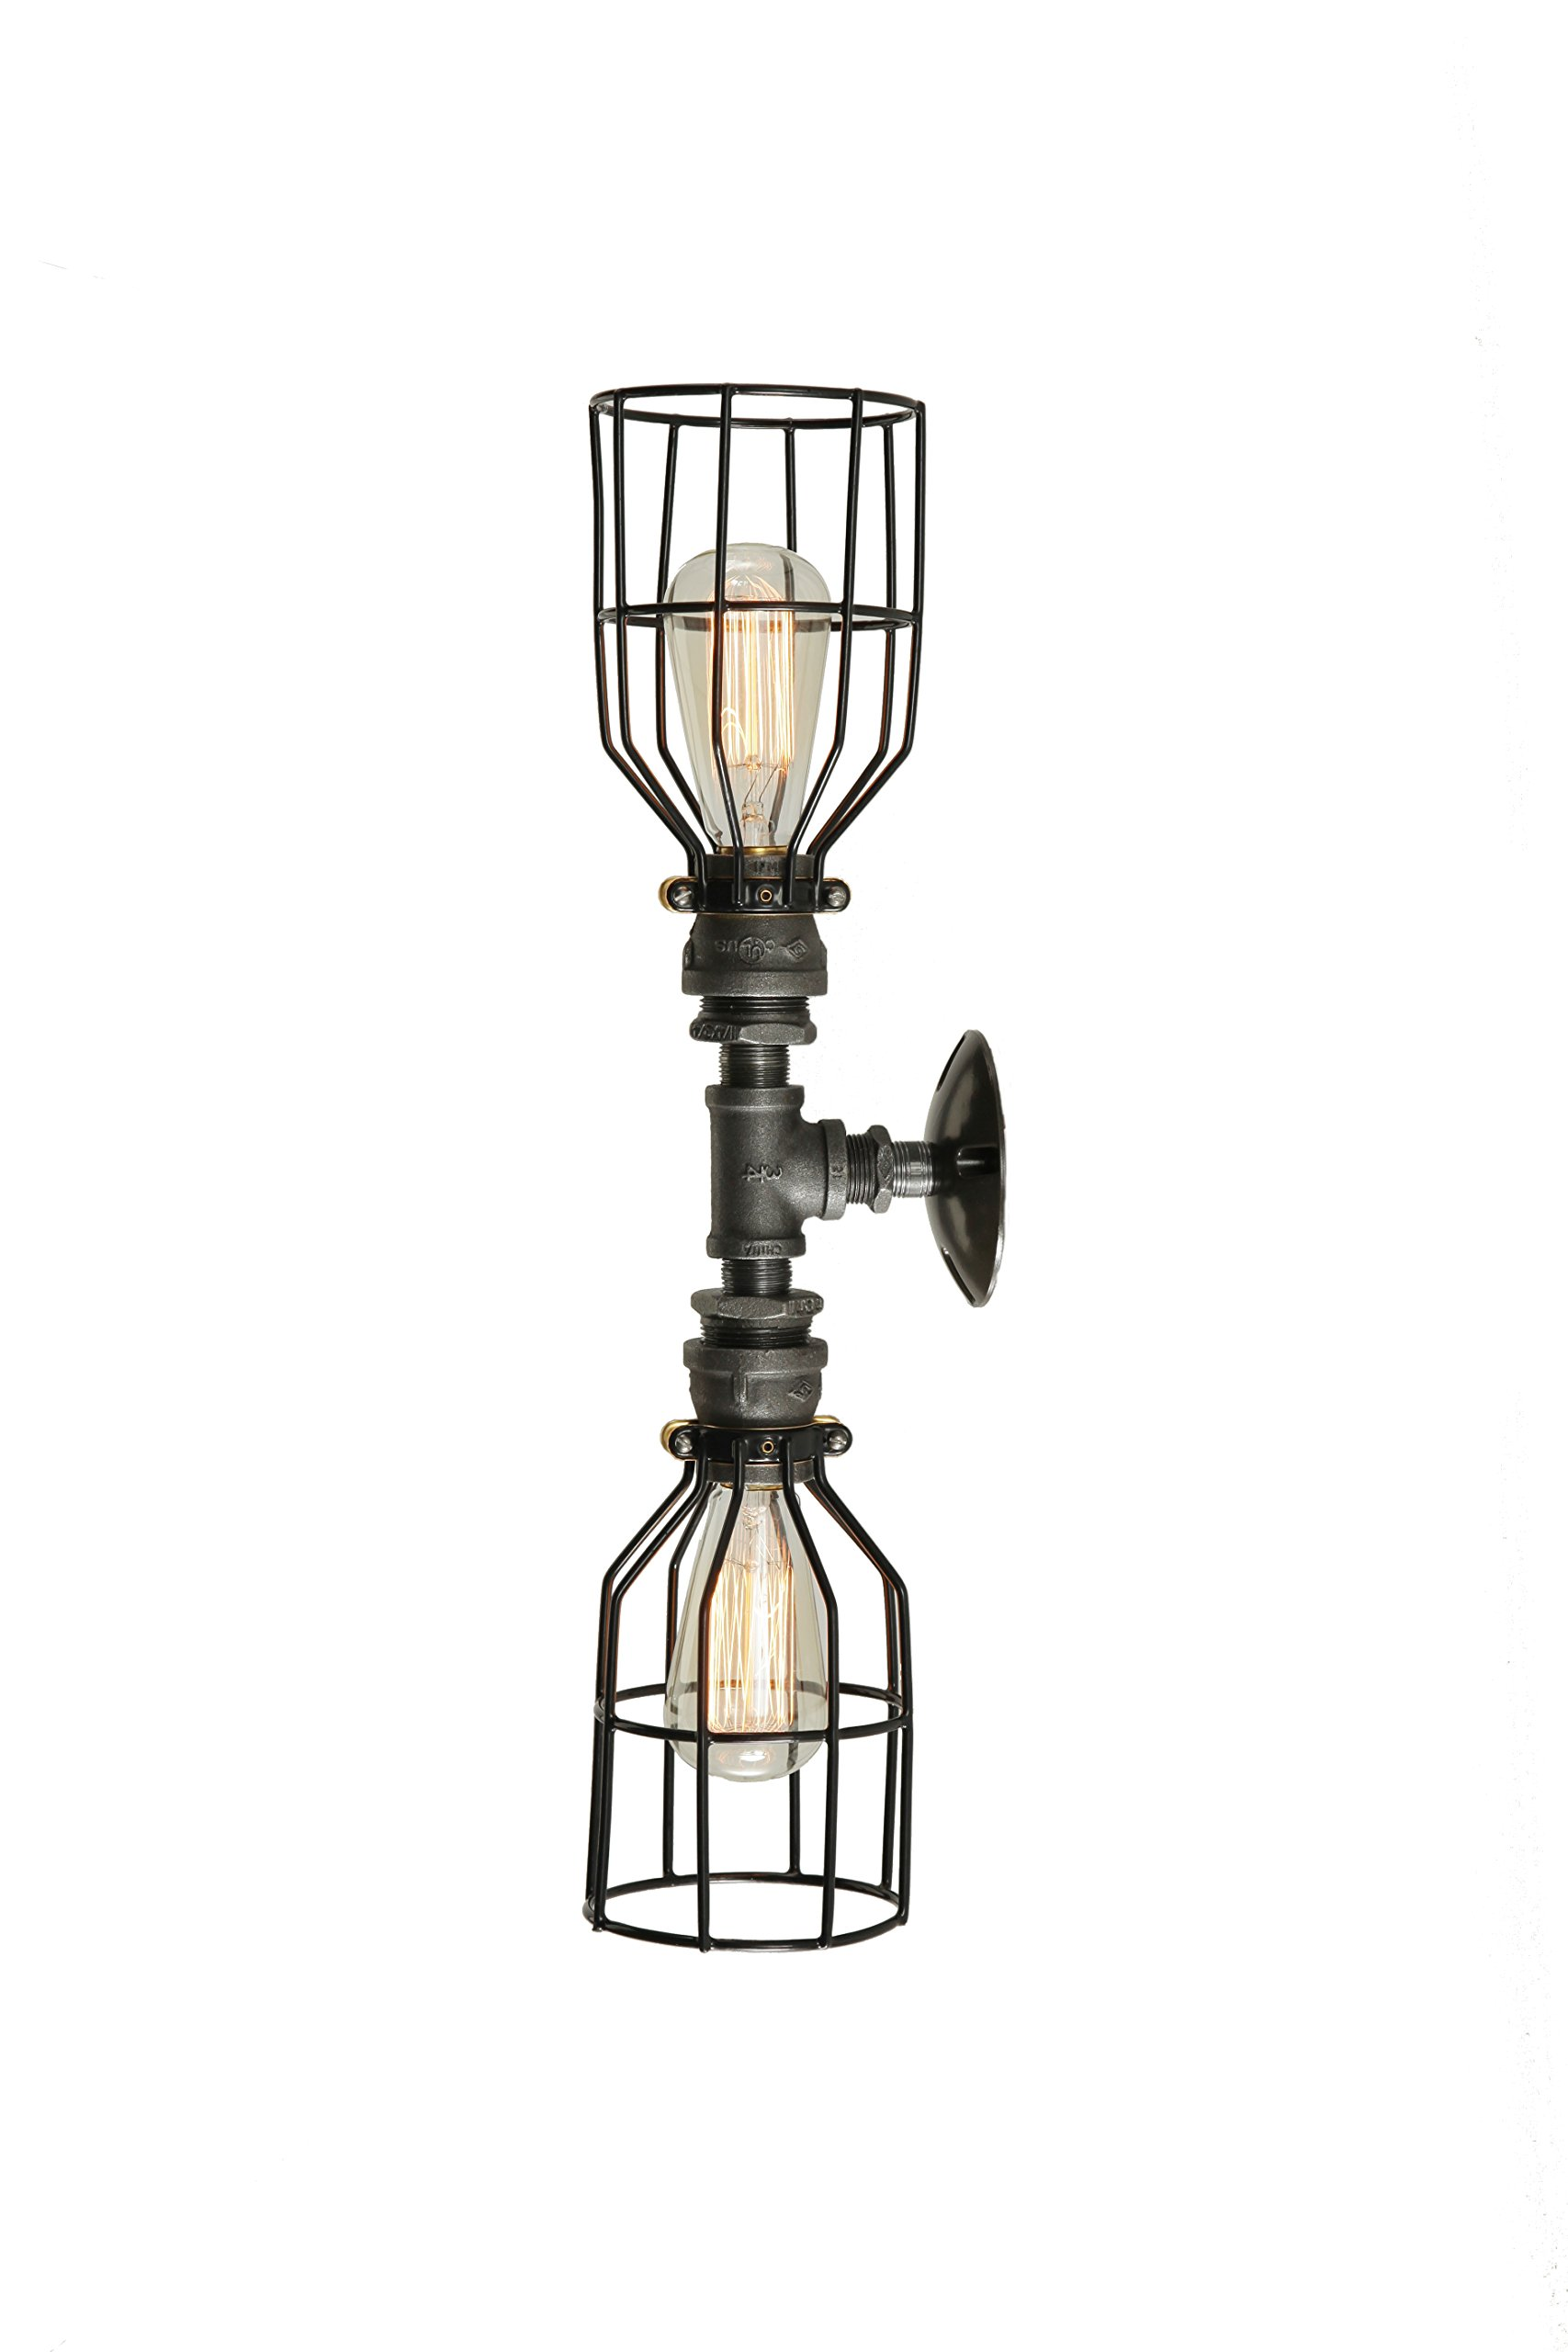 West Ninth Vintage Iron Pipe Double Vanity and or Ceiling Light With Cages